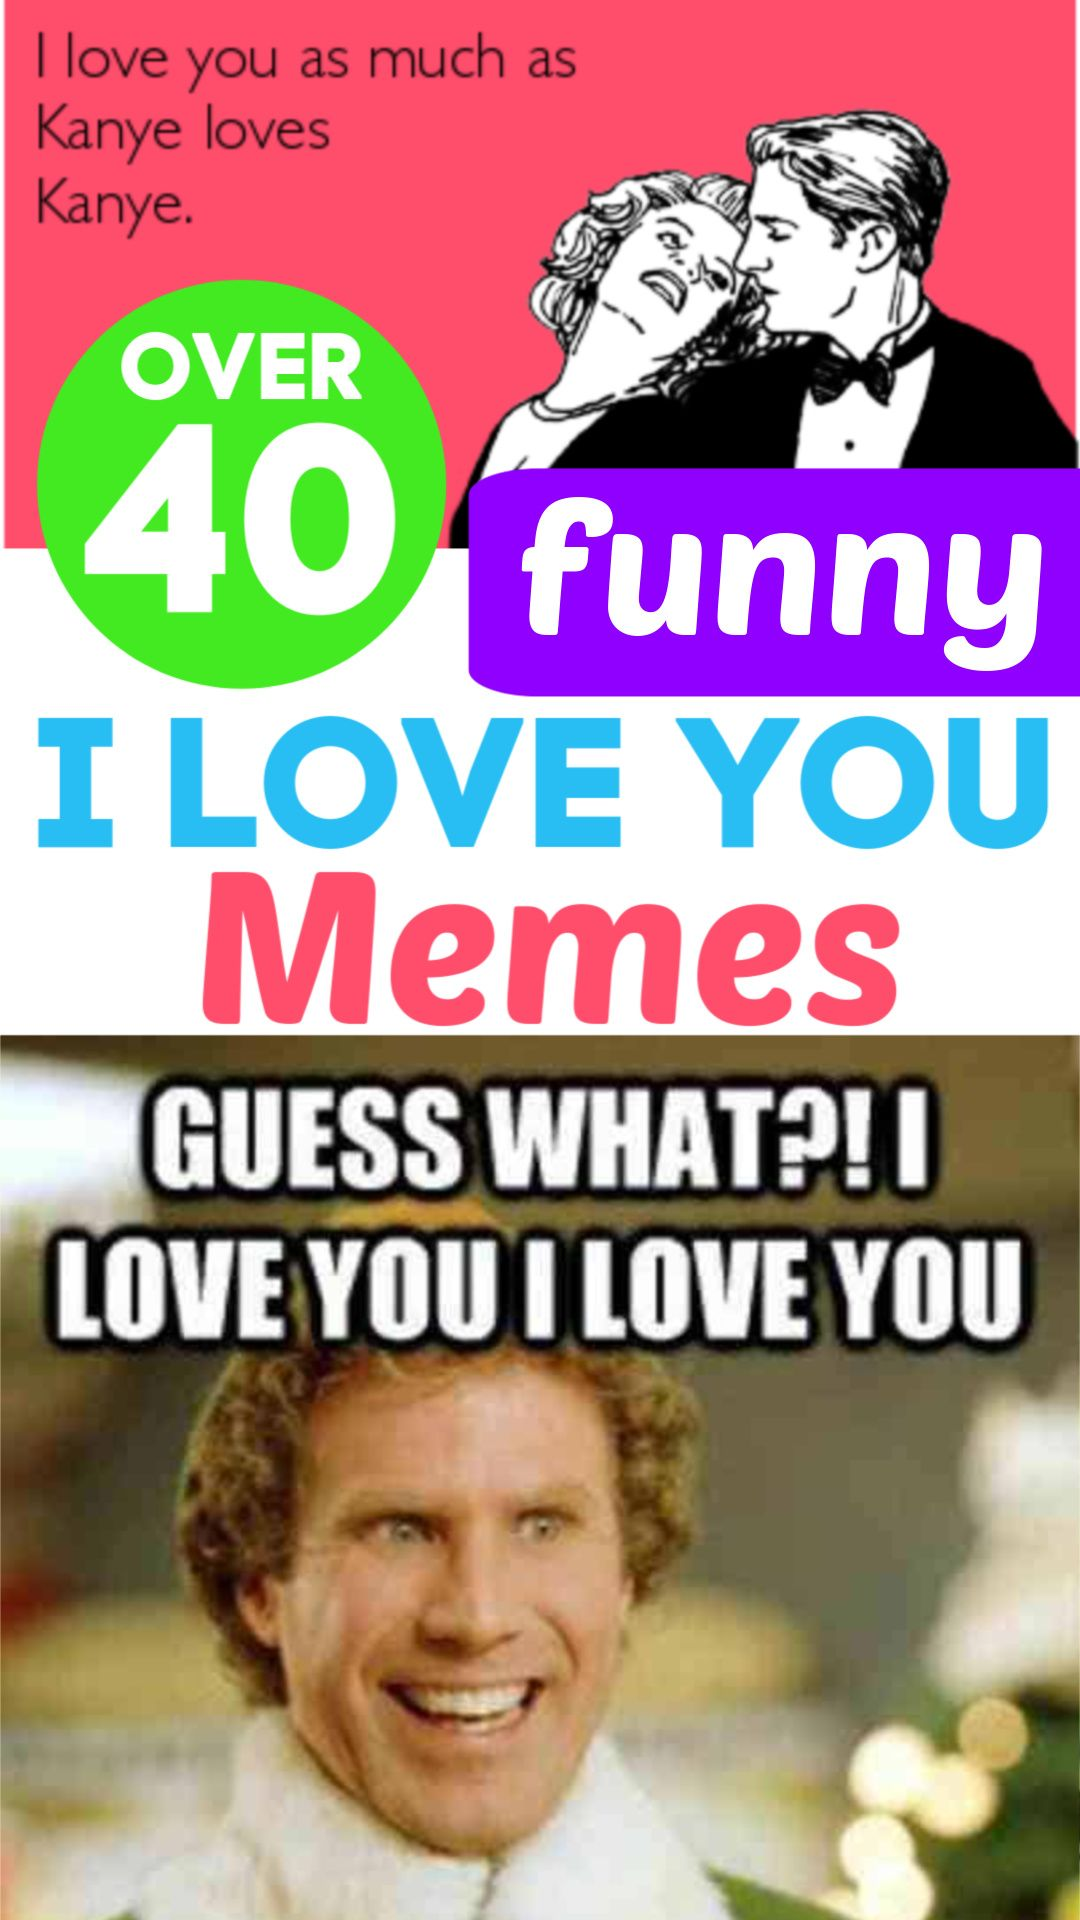 I Love You Memes For Him And Her Freshmorningquotes Baseball Memes Buddy The Elf Meme Buddy The Elf